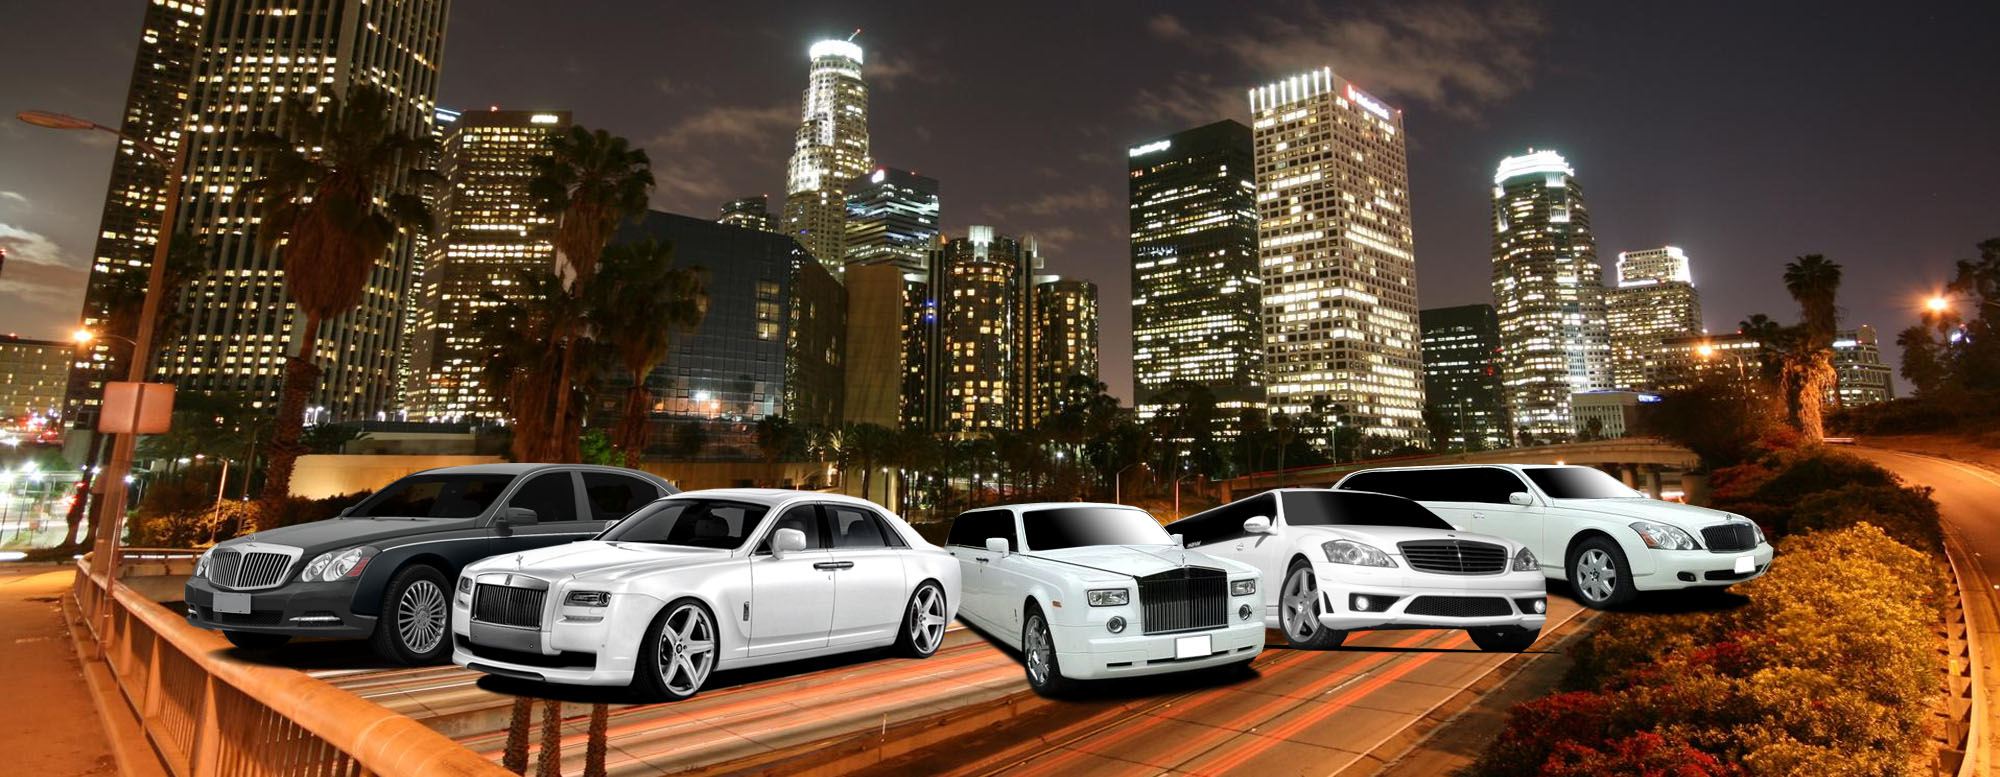 bentley ride limo limousine with best online services toronto limosine tls in flair rental service